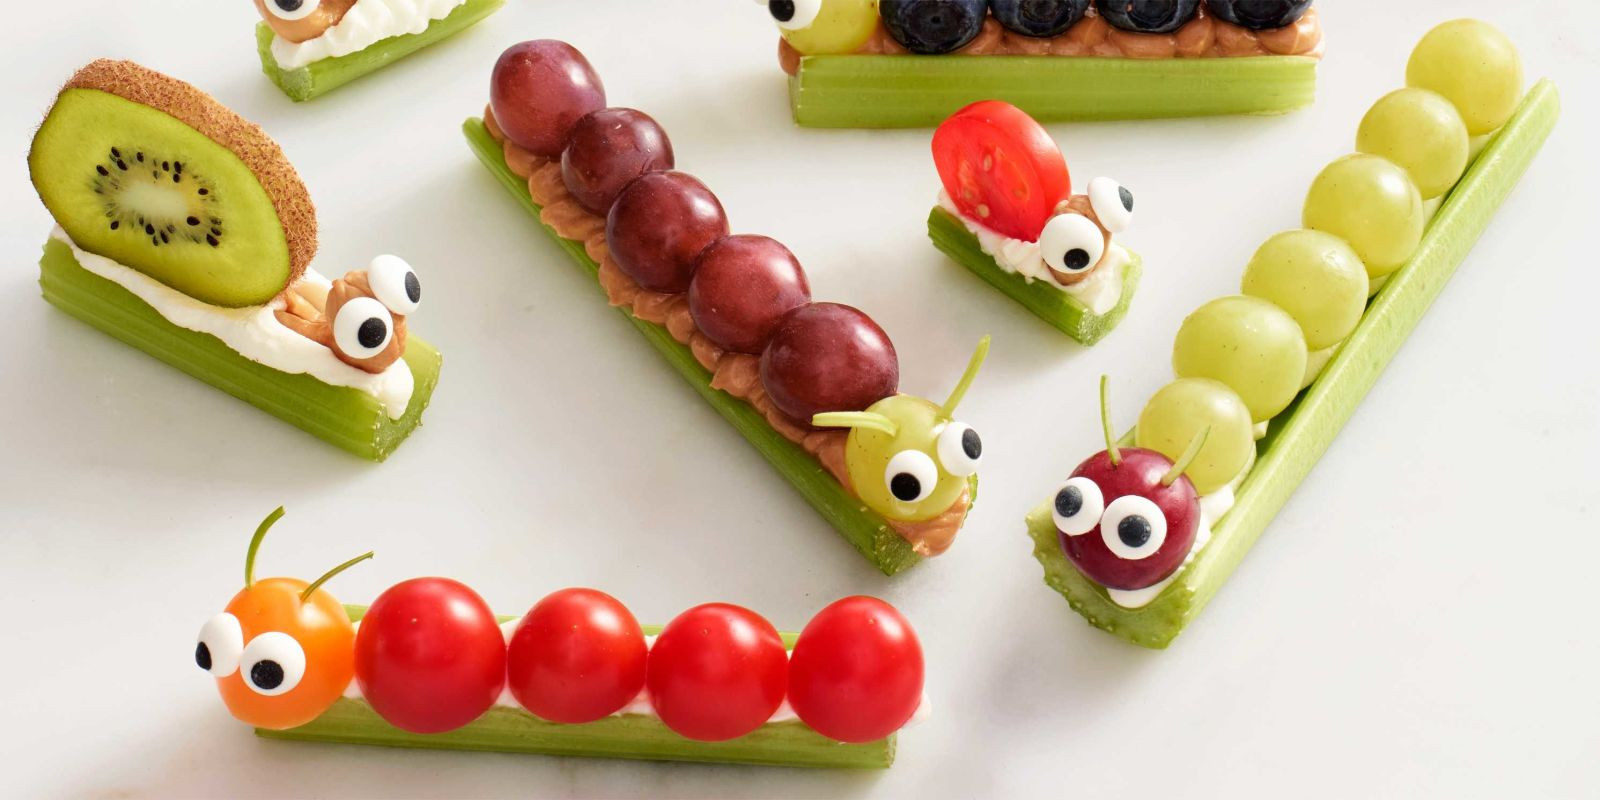 Healthy Toddler Snacks On The Go  22 Easy After School Snacks Your Kids Will Go Wild Over